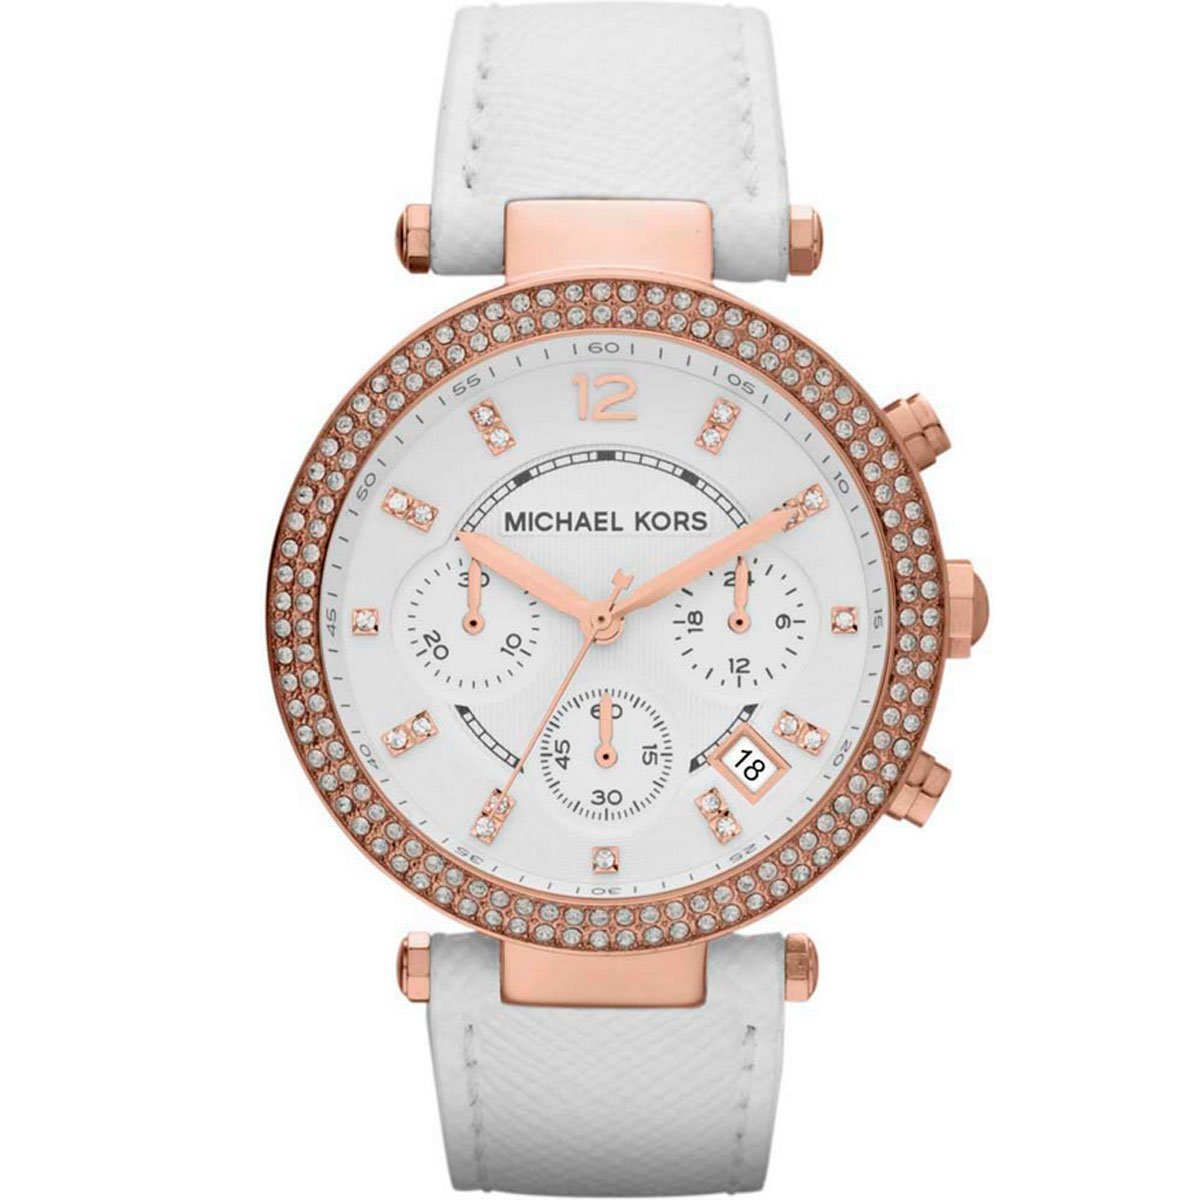 Michael Kors Watches Parker Watch (White/Rose Gold)